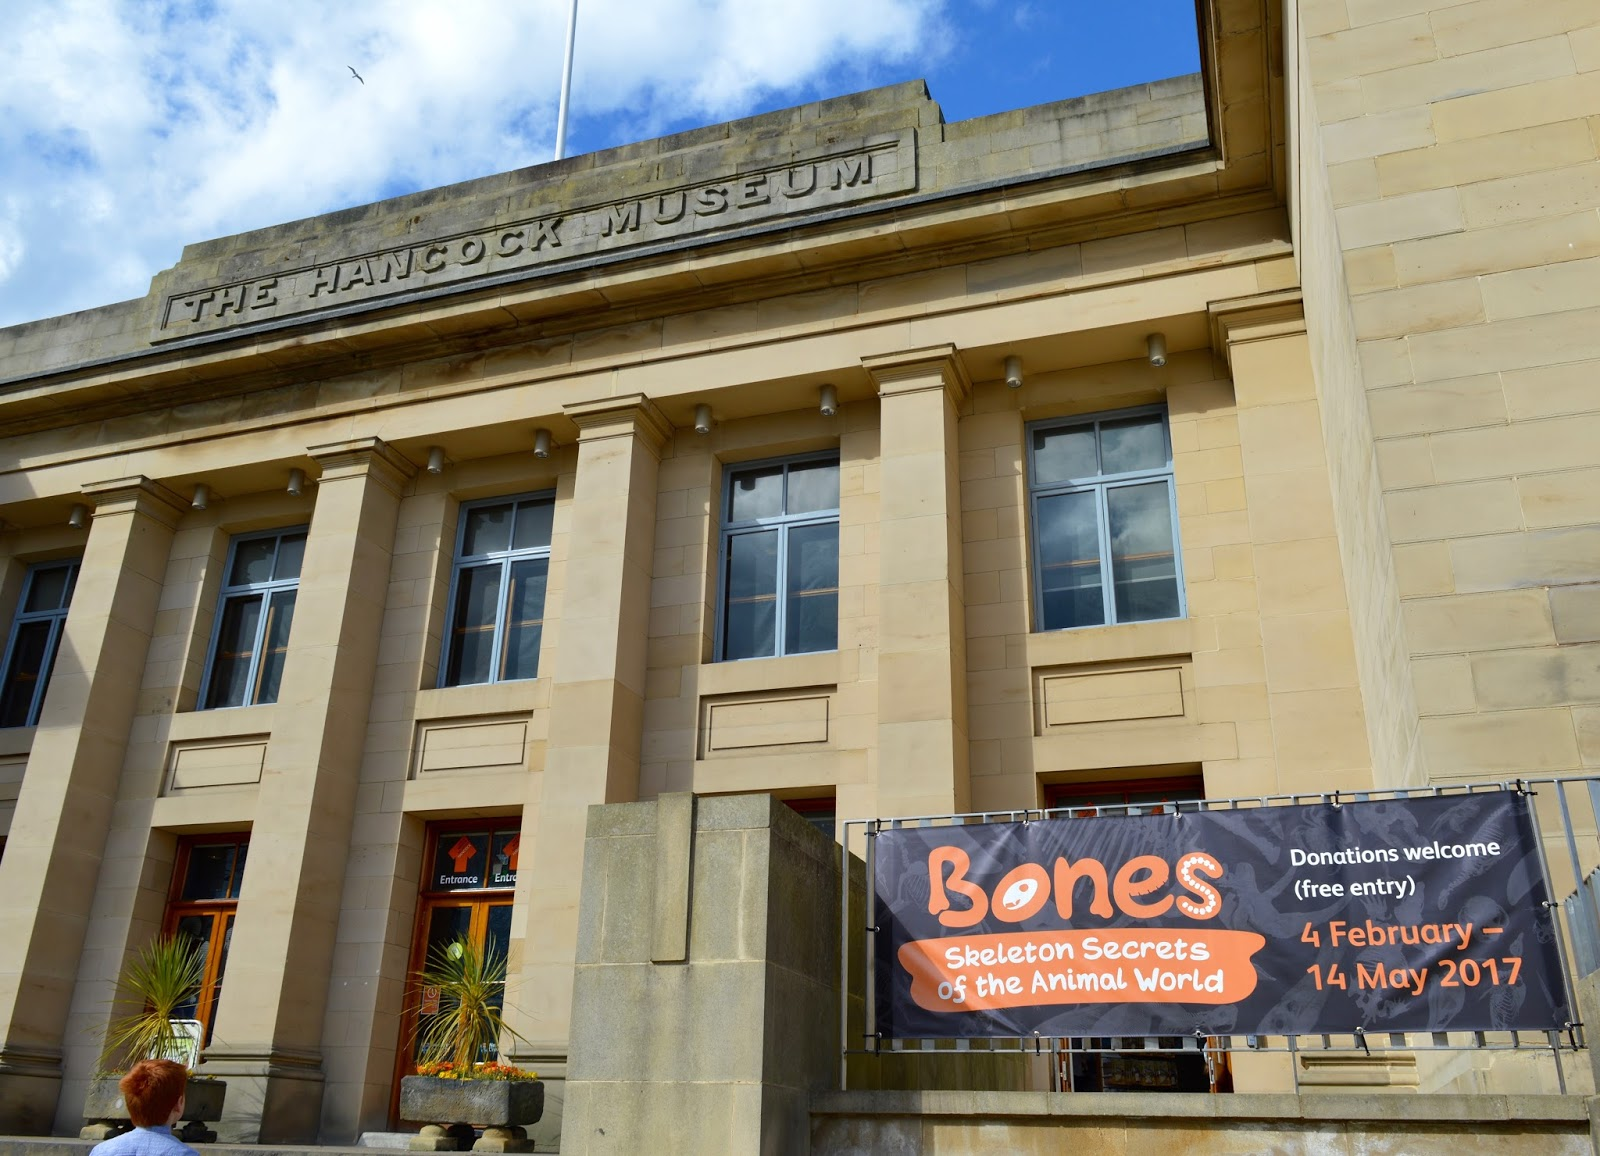 Bones Exhibition at Hancock Museum, Newcastle | Exterior